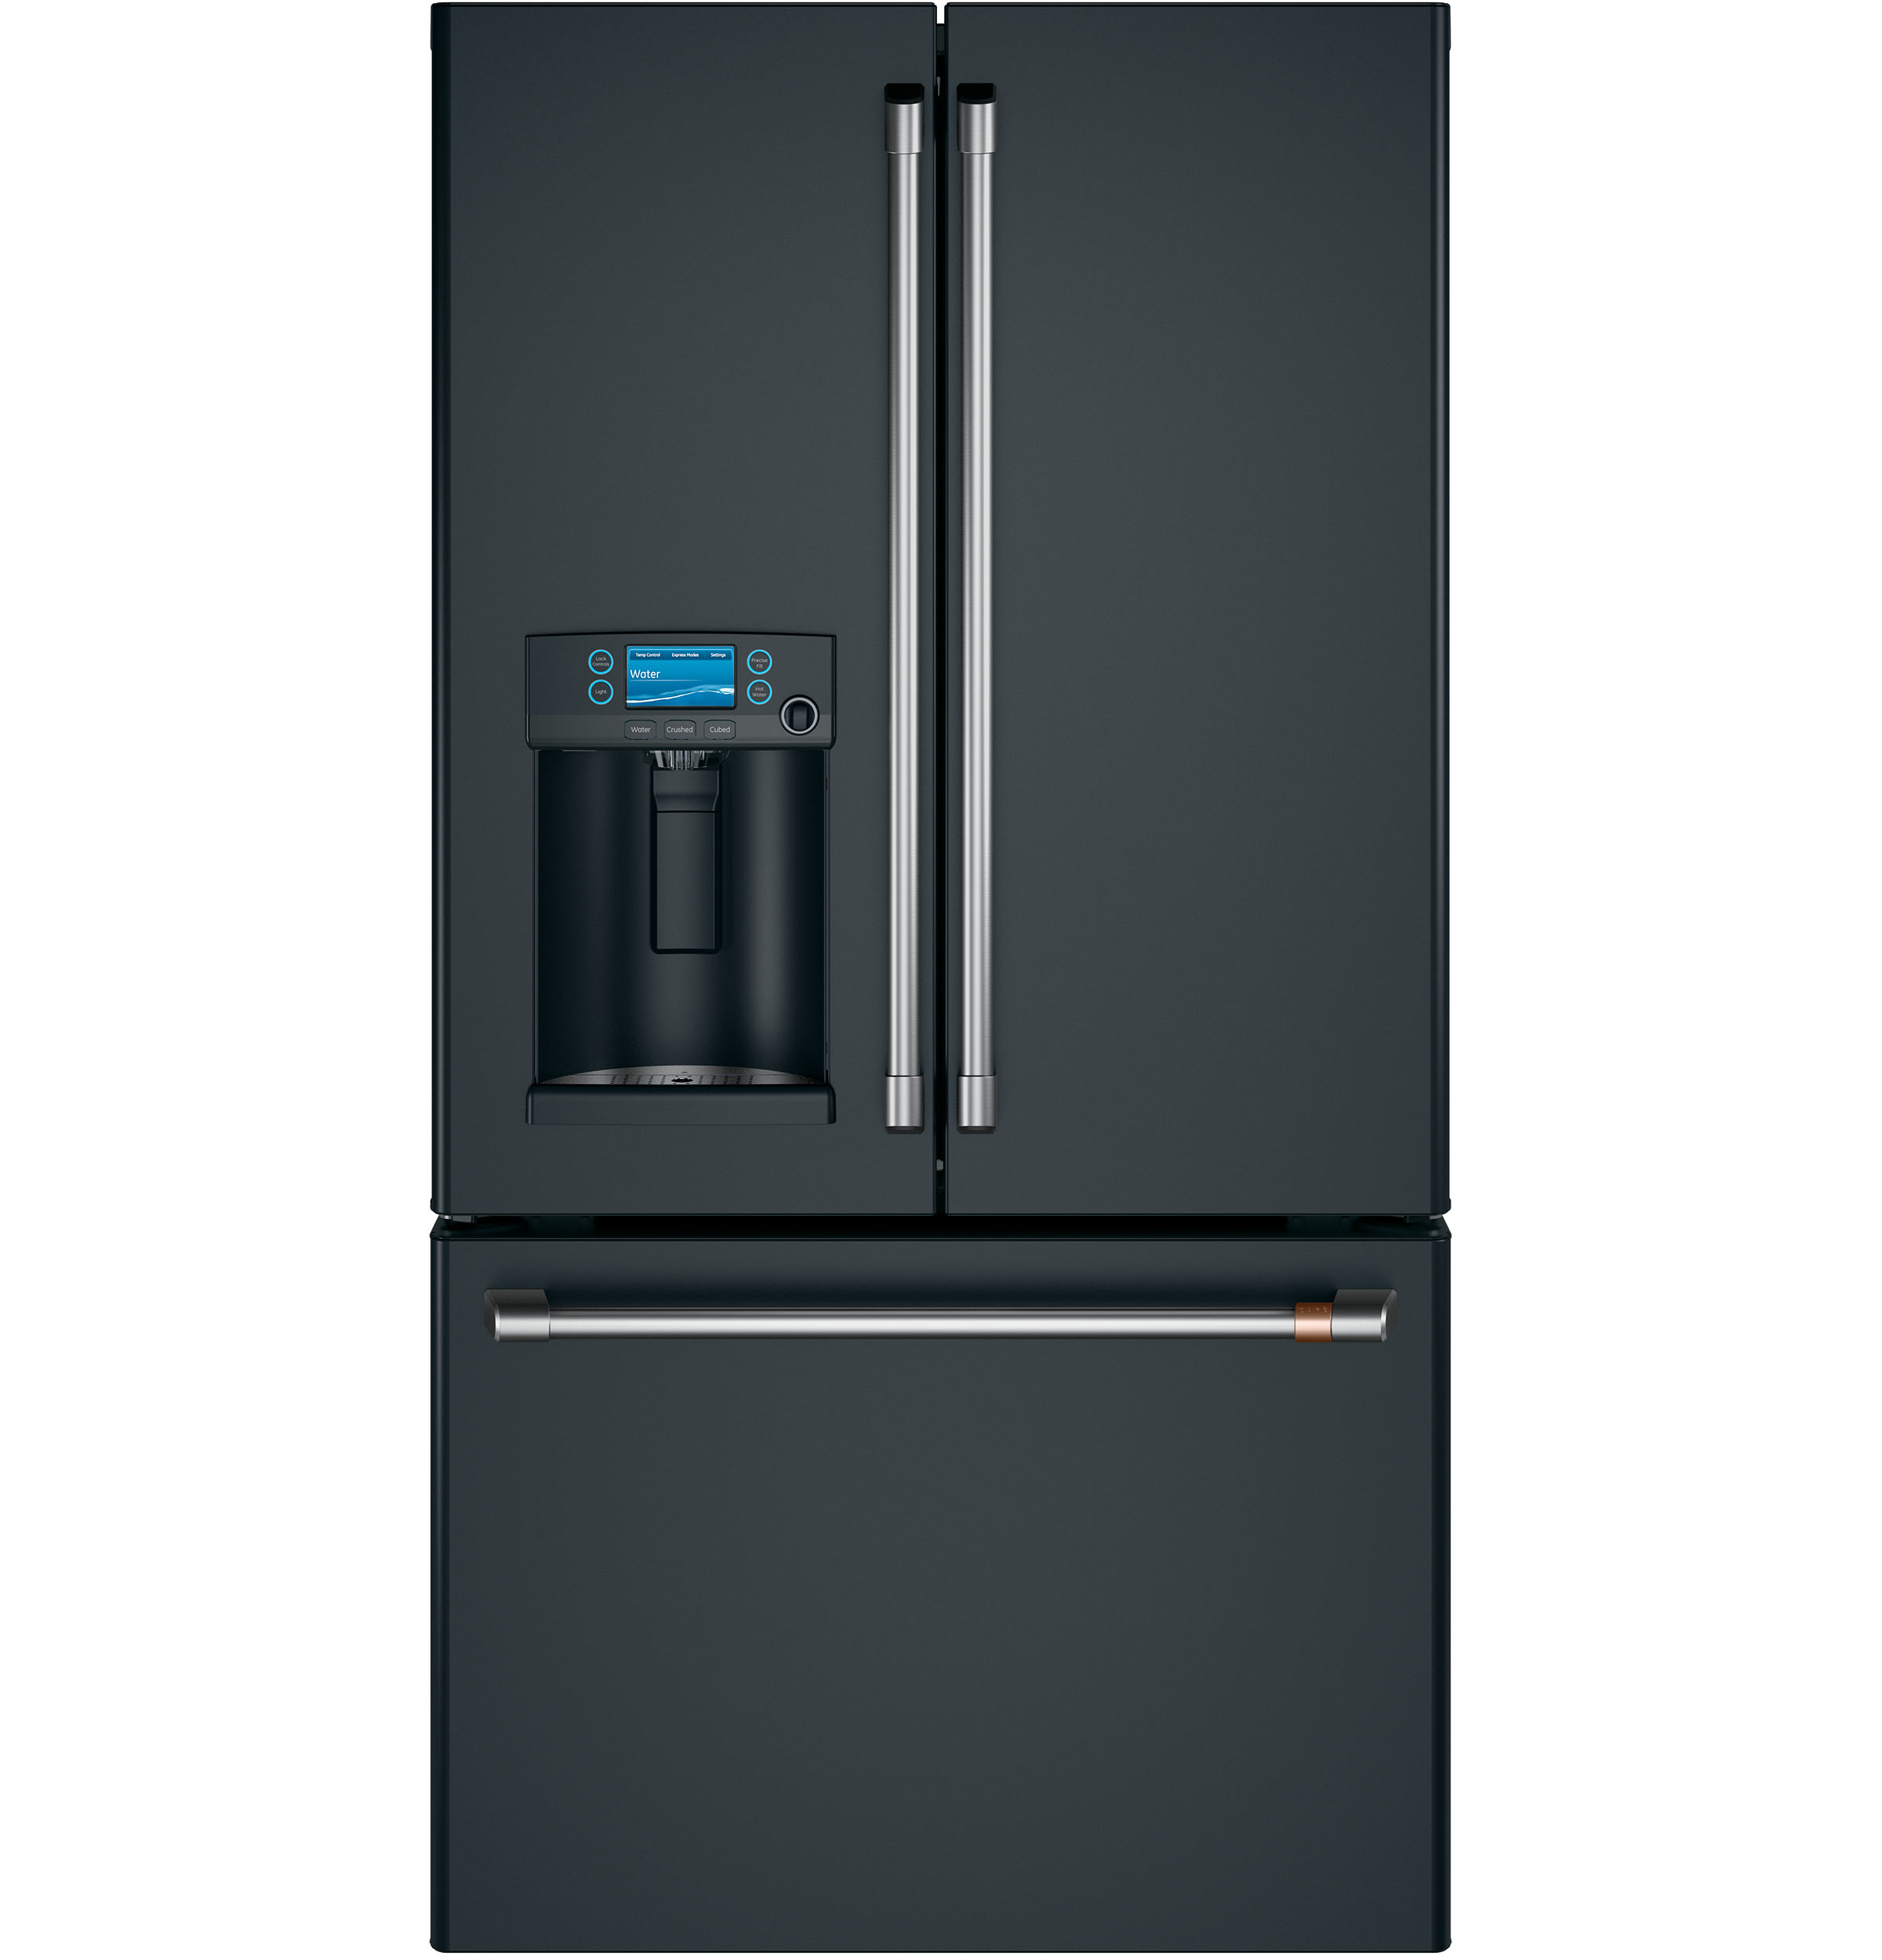 Cafe Café™ ENERGY STAR® 22.2 Cu. Ft. Counter-Depth French-Door Refrigerator with Hot Water Dispenser